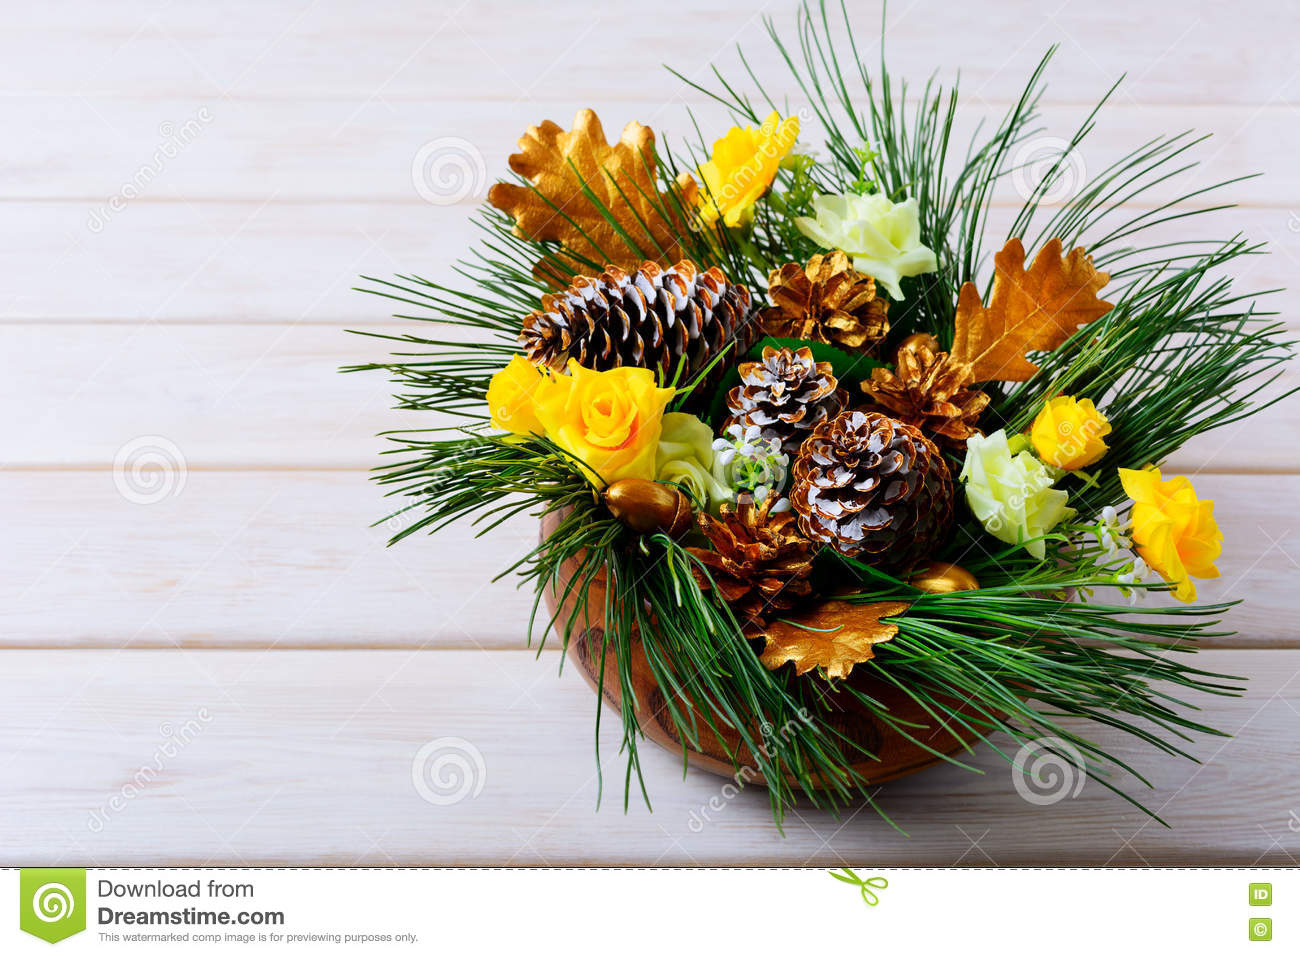 Pine Branches For Decoration Christmas Table Decoration With Pine Branches And Golden Cones